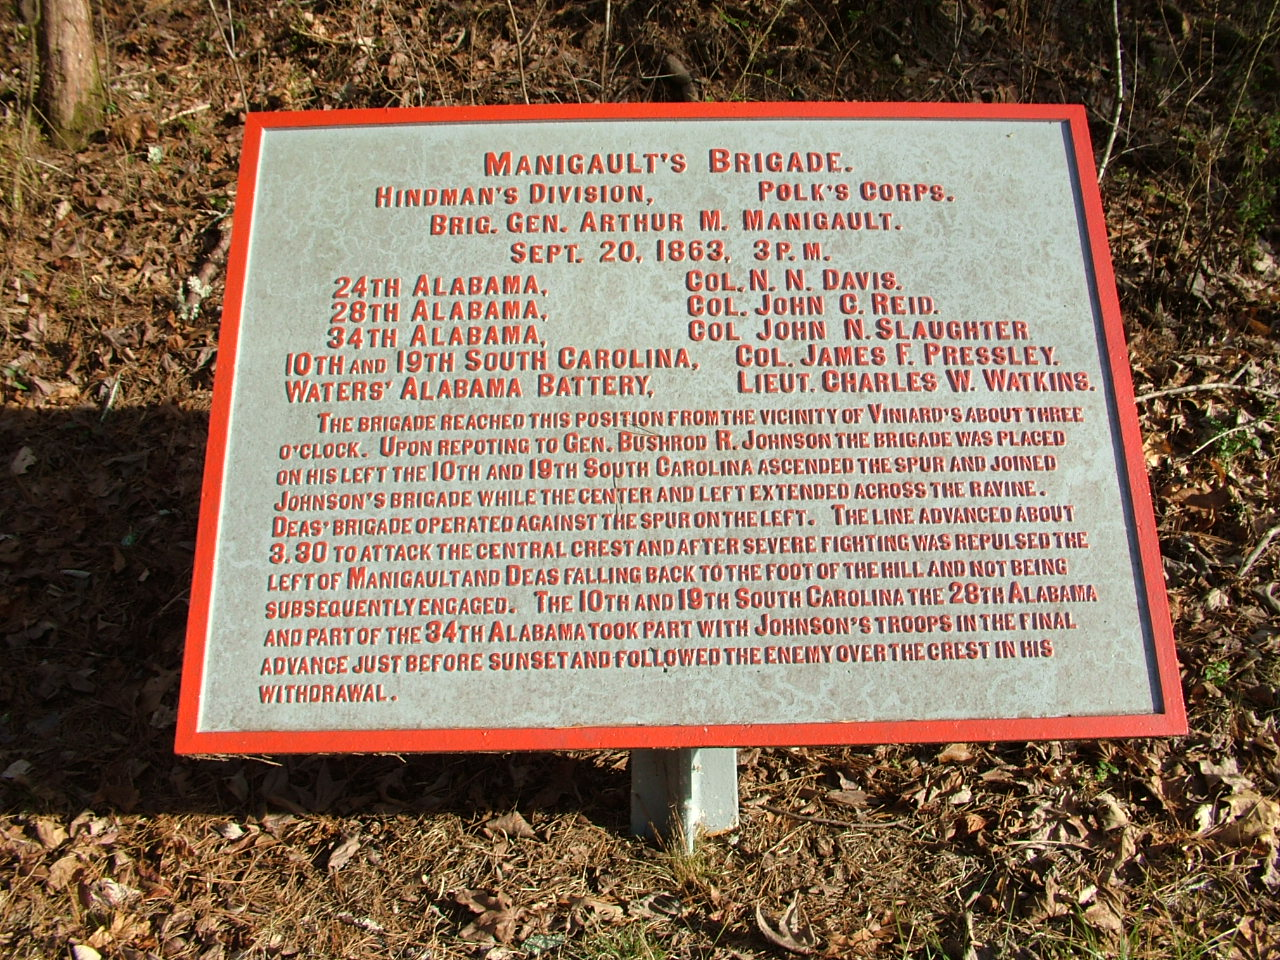 Today, a historical marker still stands in honor of Manigault's Brigade at the Chickamauga Battlefield. Unfortunately, there is no standing tablet to honor the brigade who fought miles away on the Missionary Ridge Battlefield just a few short months later. (Photo credit: Chickamauga and Chattanooga National Military Park)